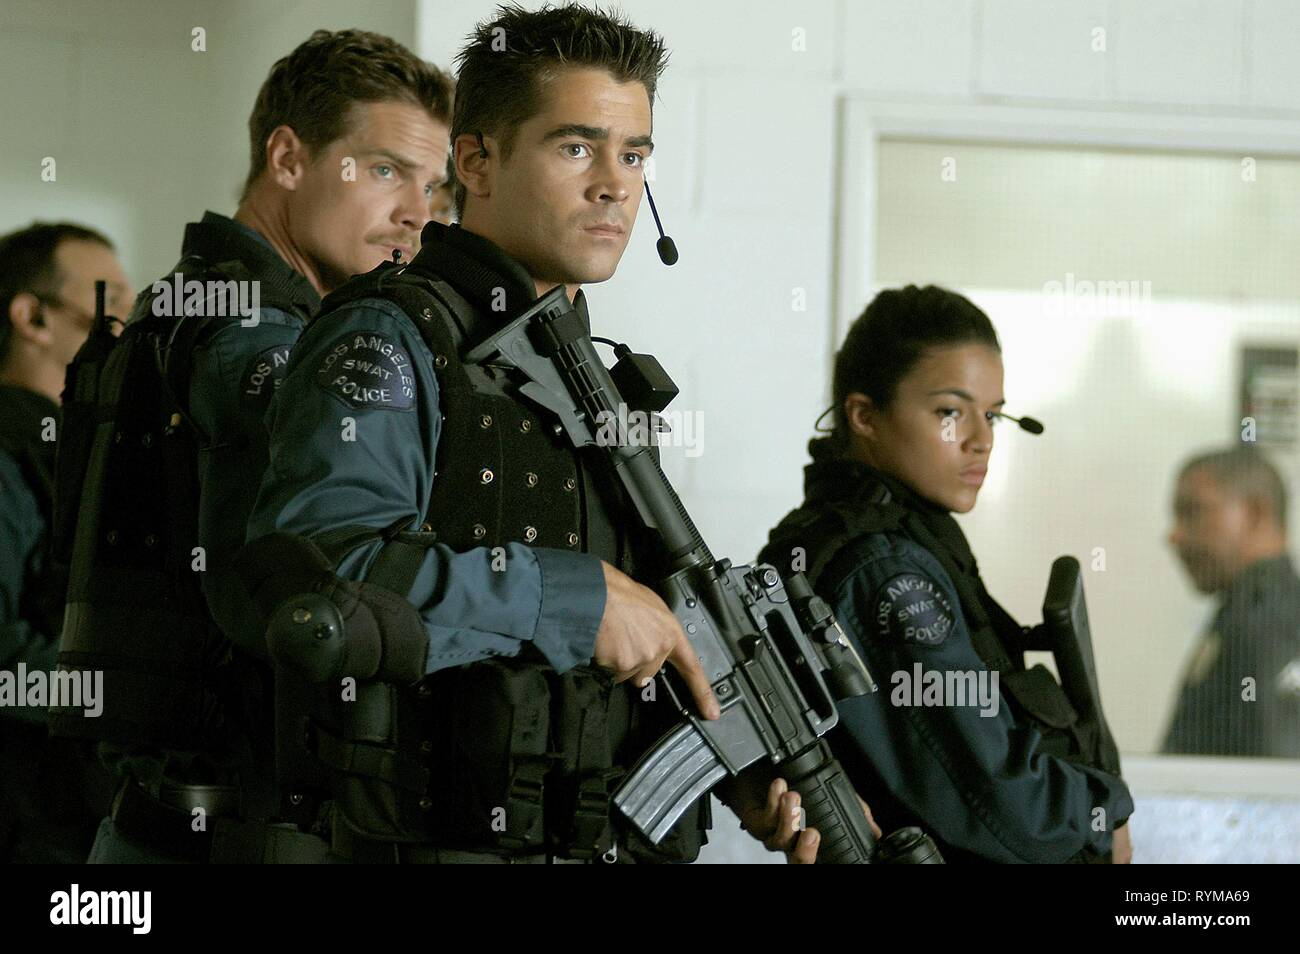 HOLT,FARRELL,RODRIGUEZ, S.W.A.T., 2003 - Stock Image